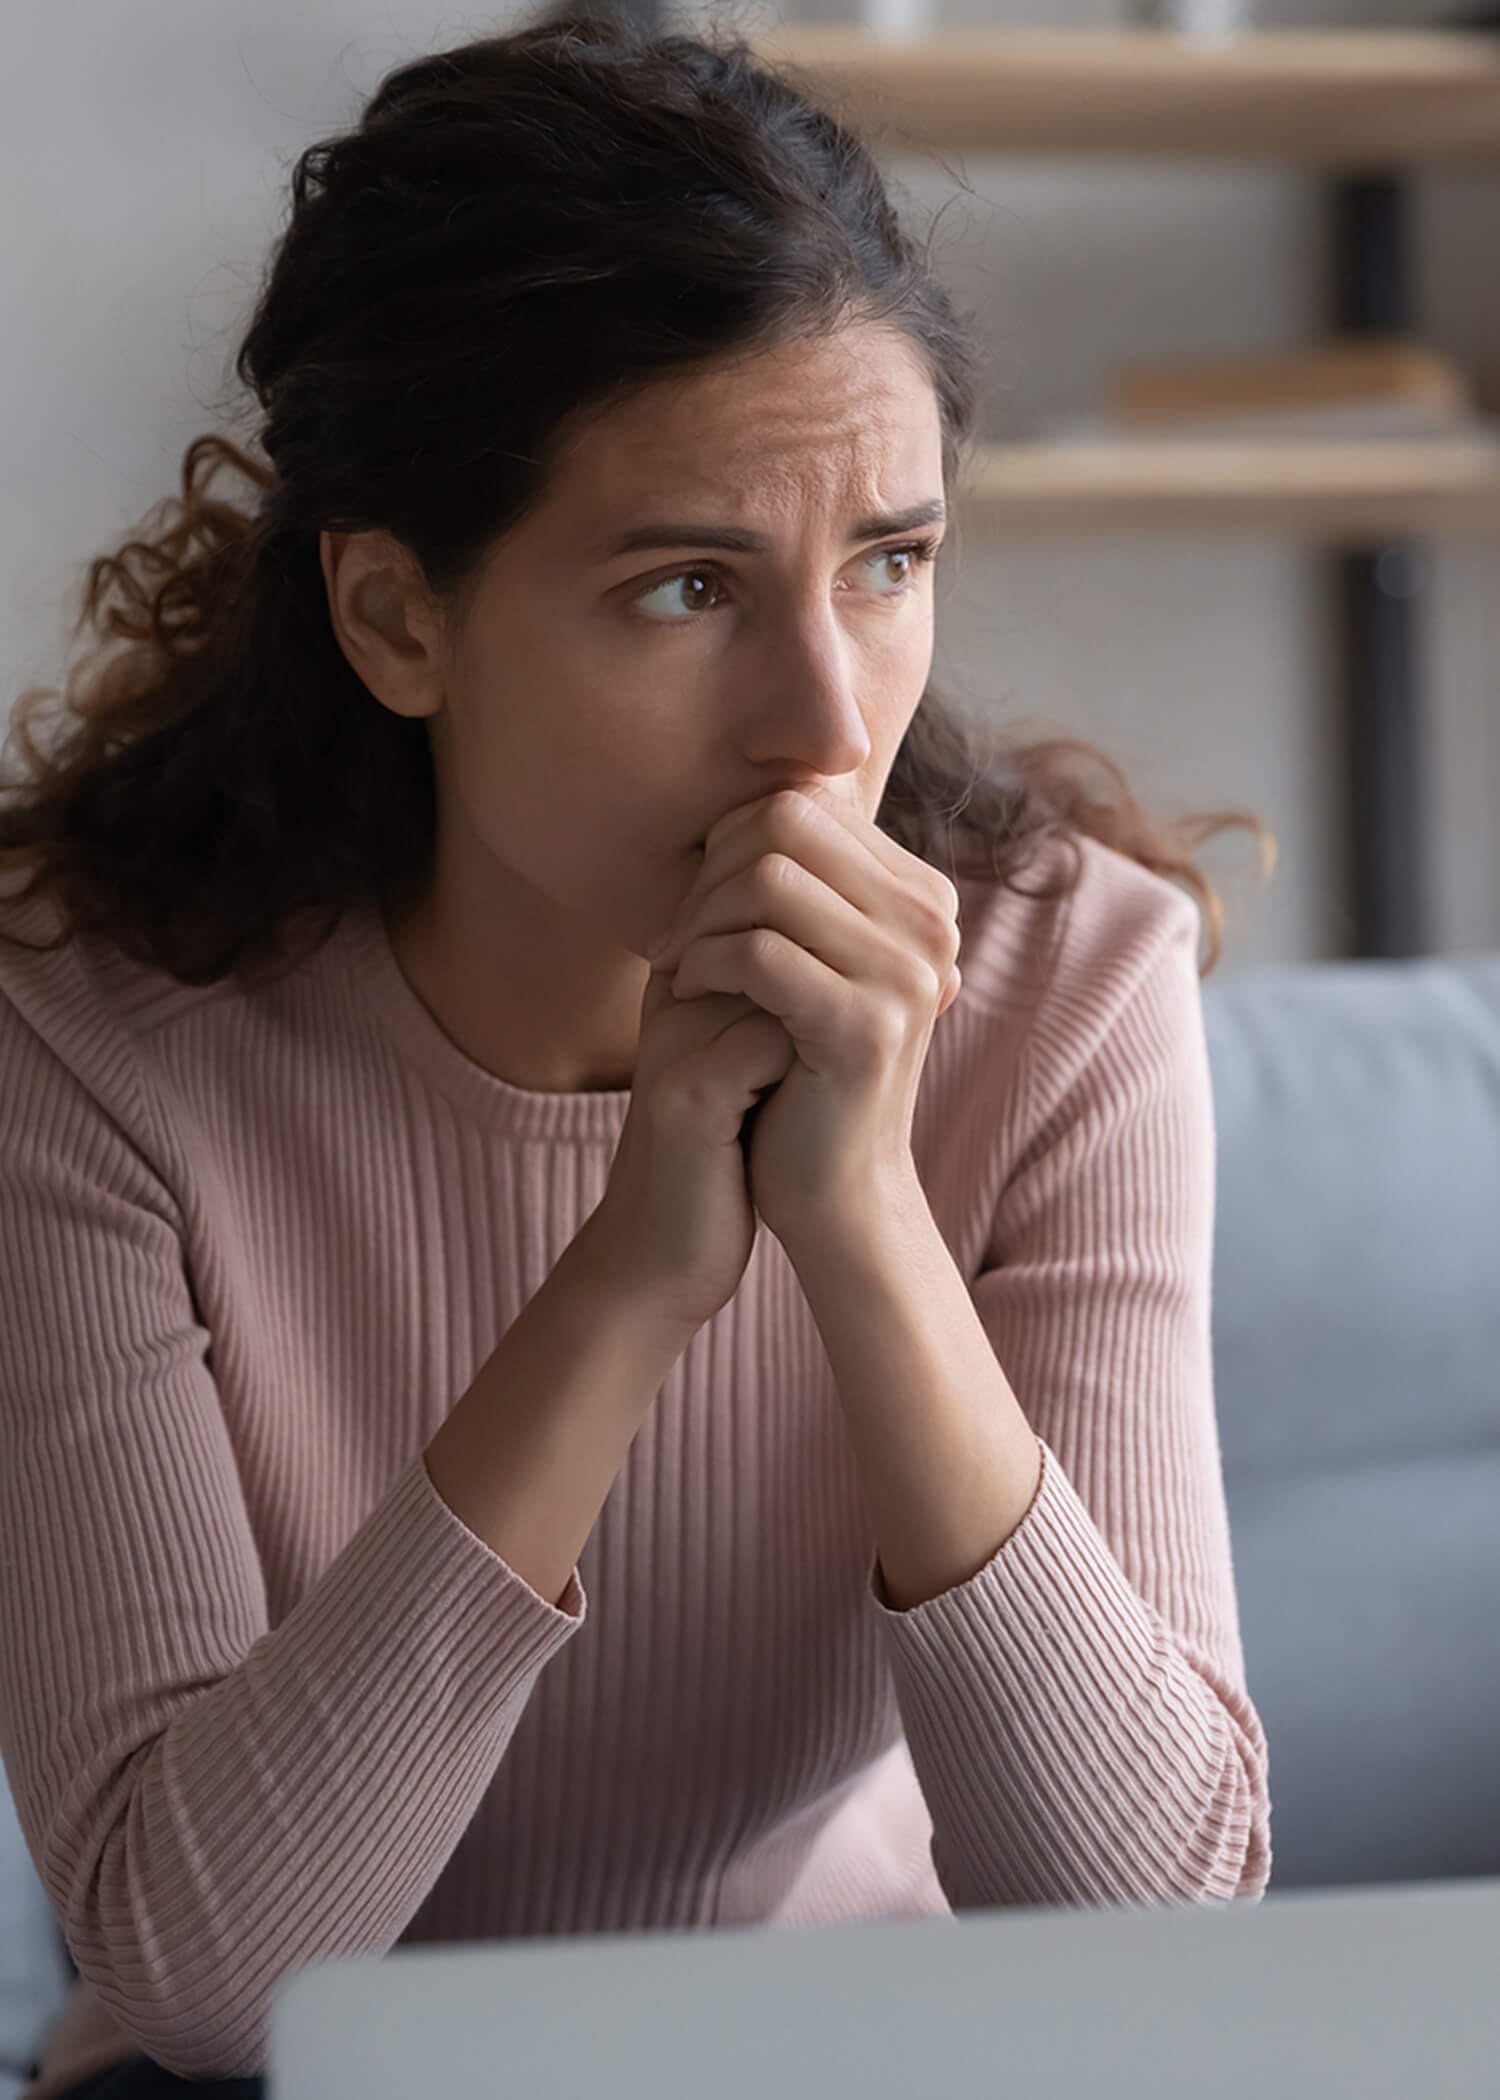 Image of a woman wearing a pink sweater holding her hands to her mouth and looking nervous. This image illustrates how someone engaging in self-harm may feel. Those struggling with self-harm in Los Angeles, CA can get support from a DBT therapist. | 90274 | 90275